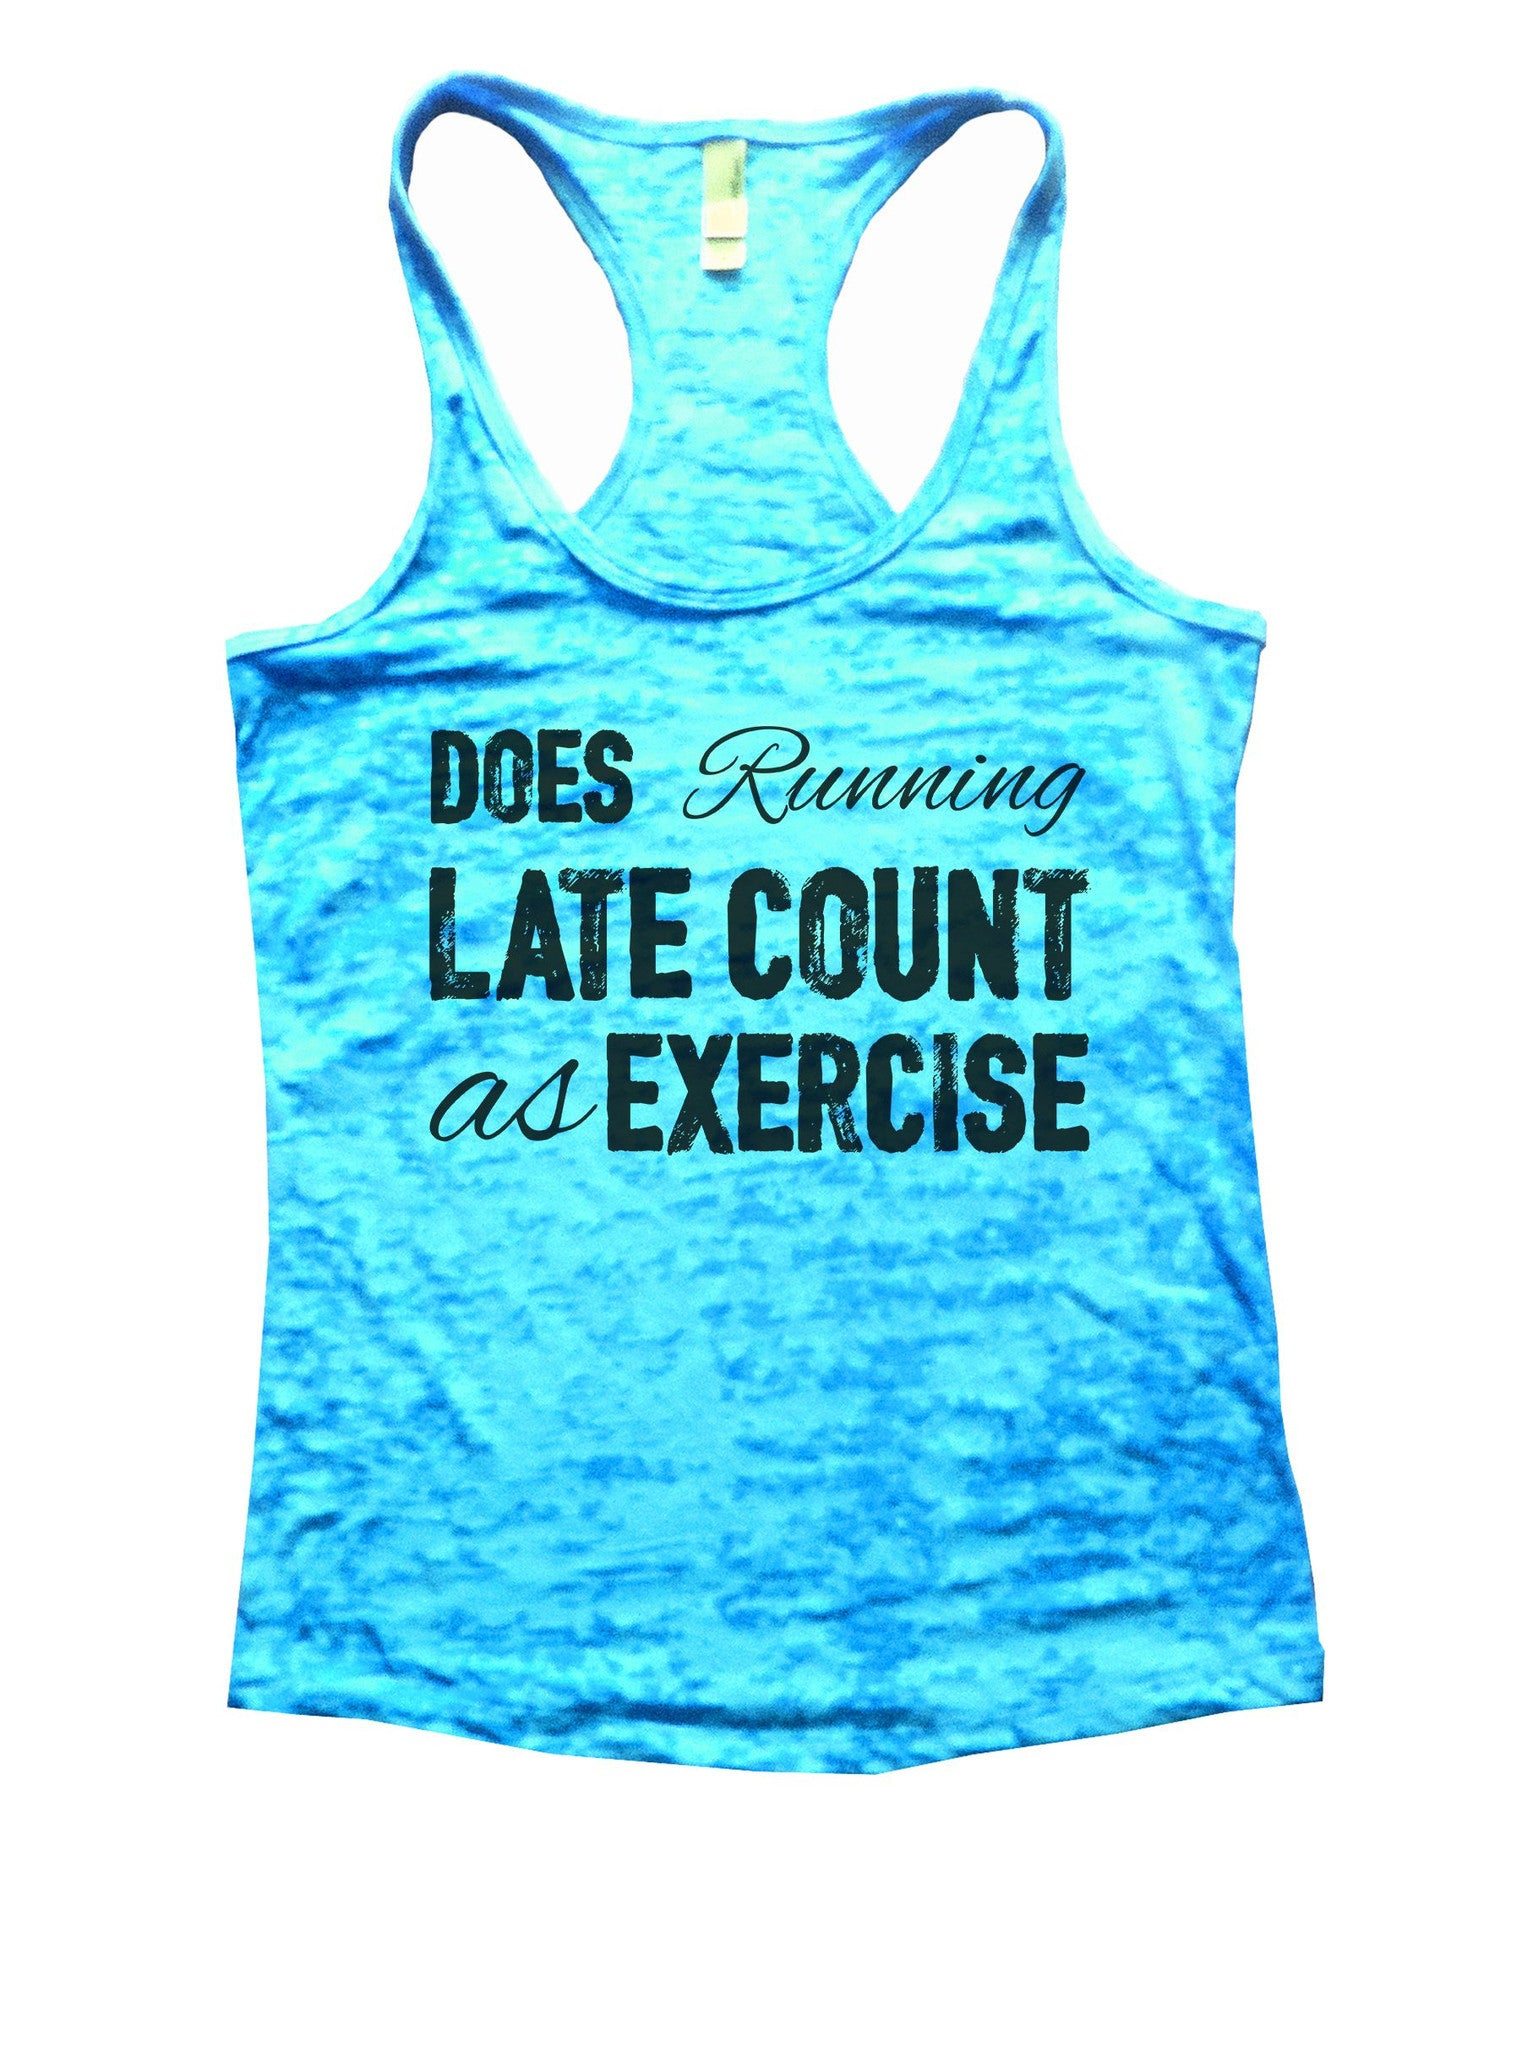 Does Running Late Count As Exercise Burnout Tank Top By BurnoutTankTops.com - 805 - Funny Shirts Tank Tops Burnouts and Triblends  - 4